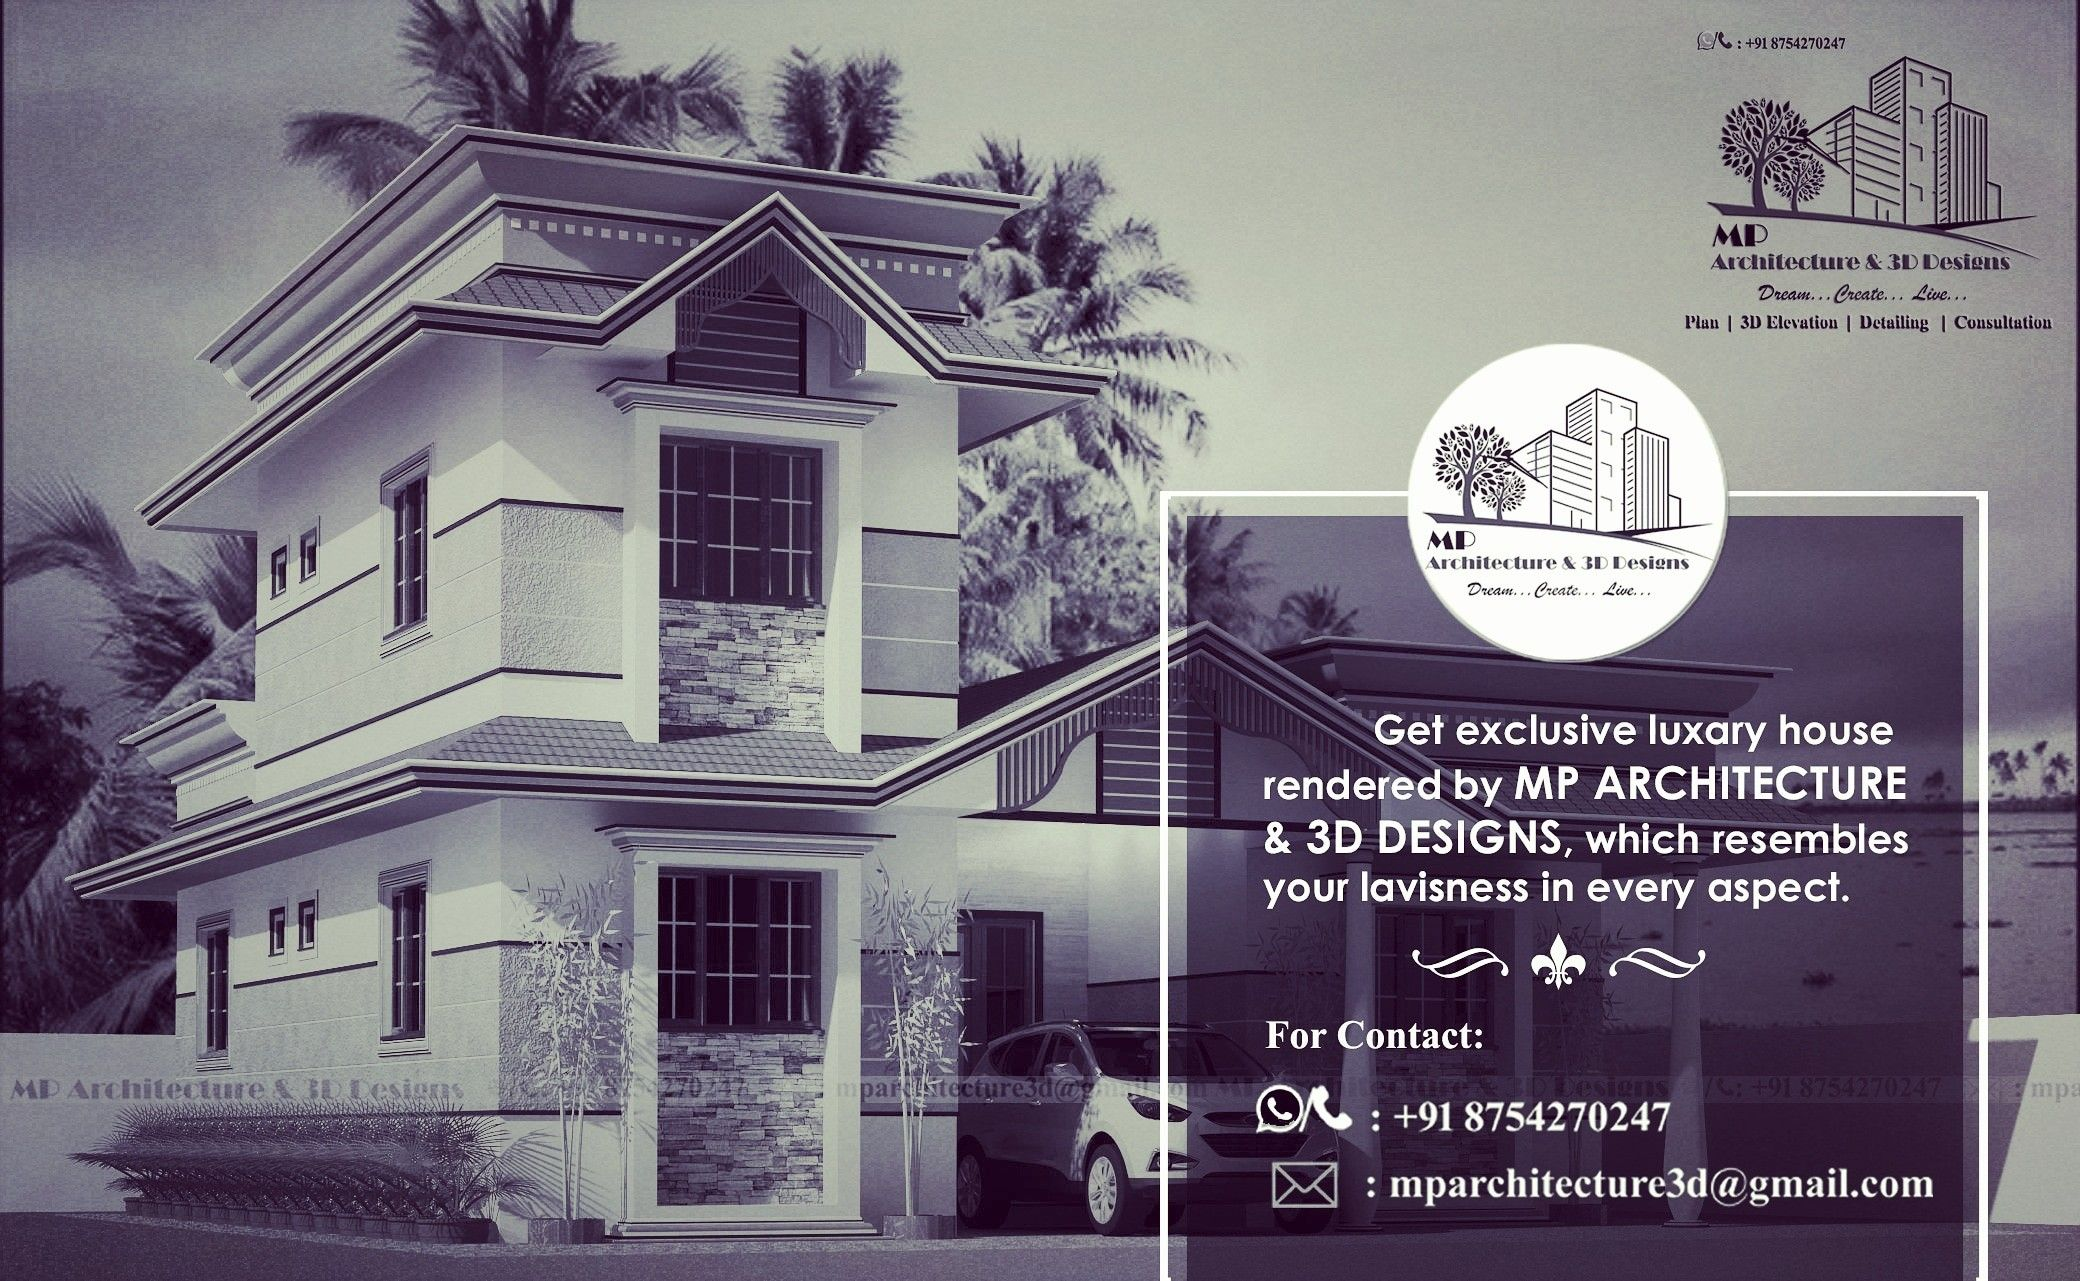 At Mp Architecture Designs We Are Very Pionate About Interior Exterior